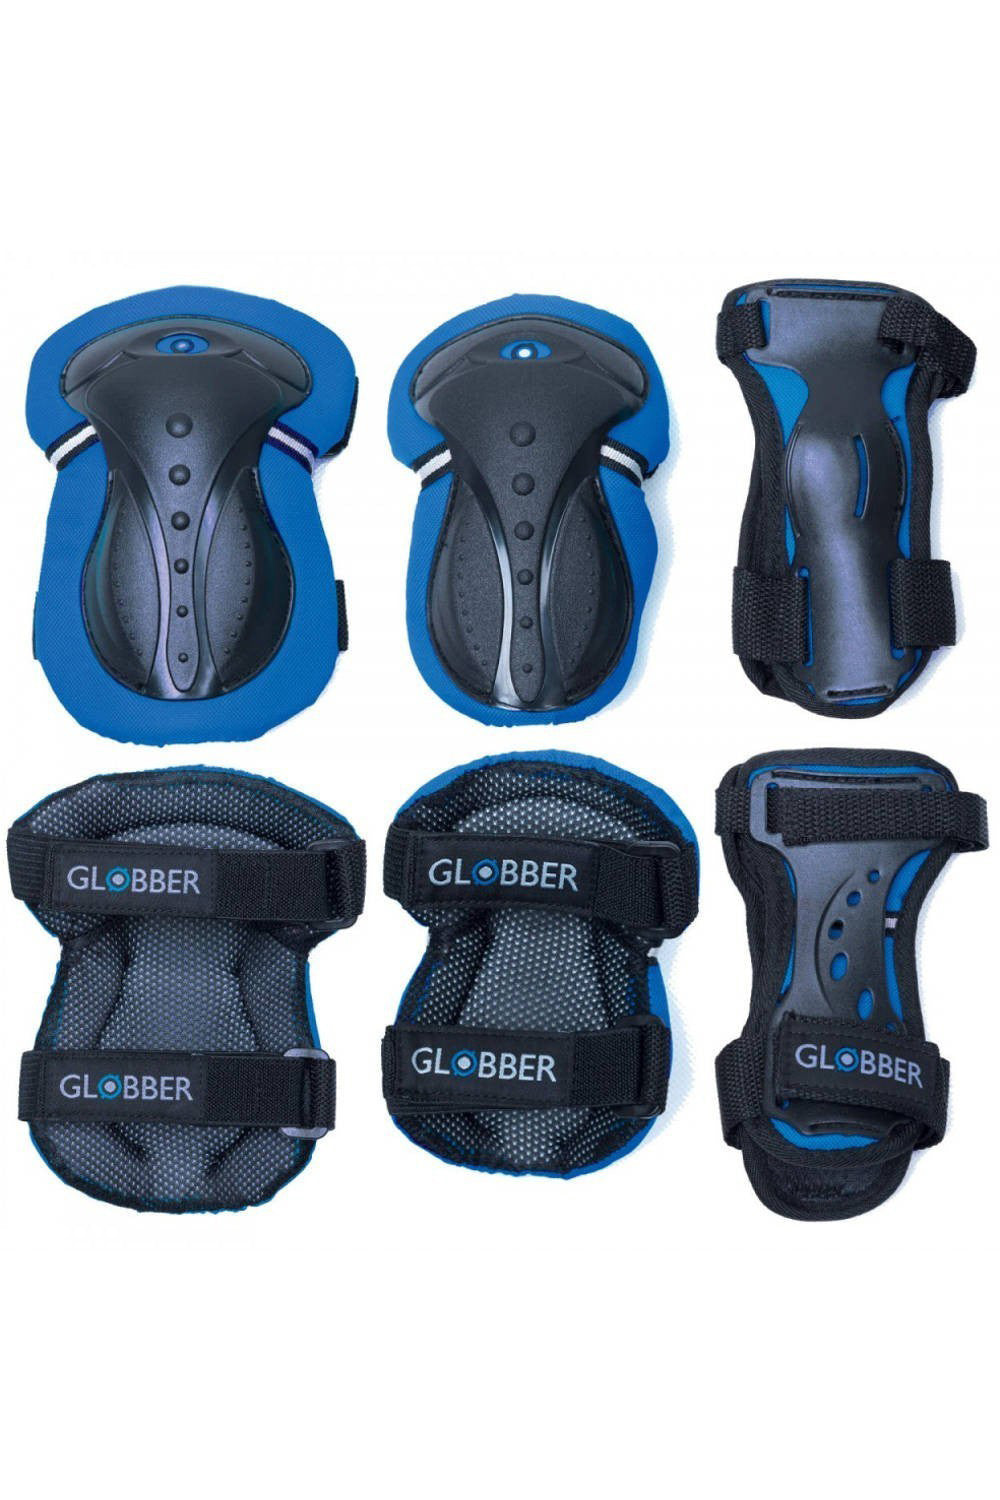 Globber Junior Protective Pad set